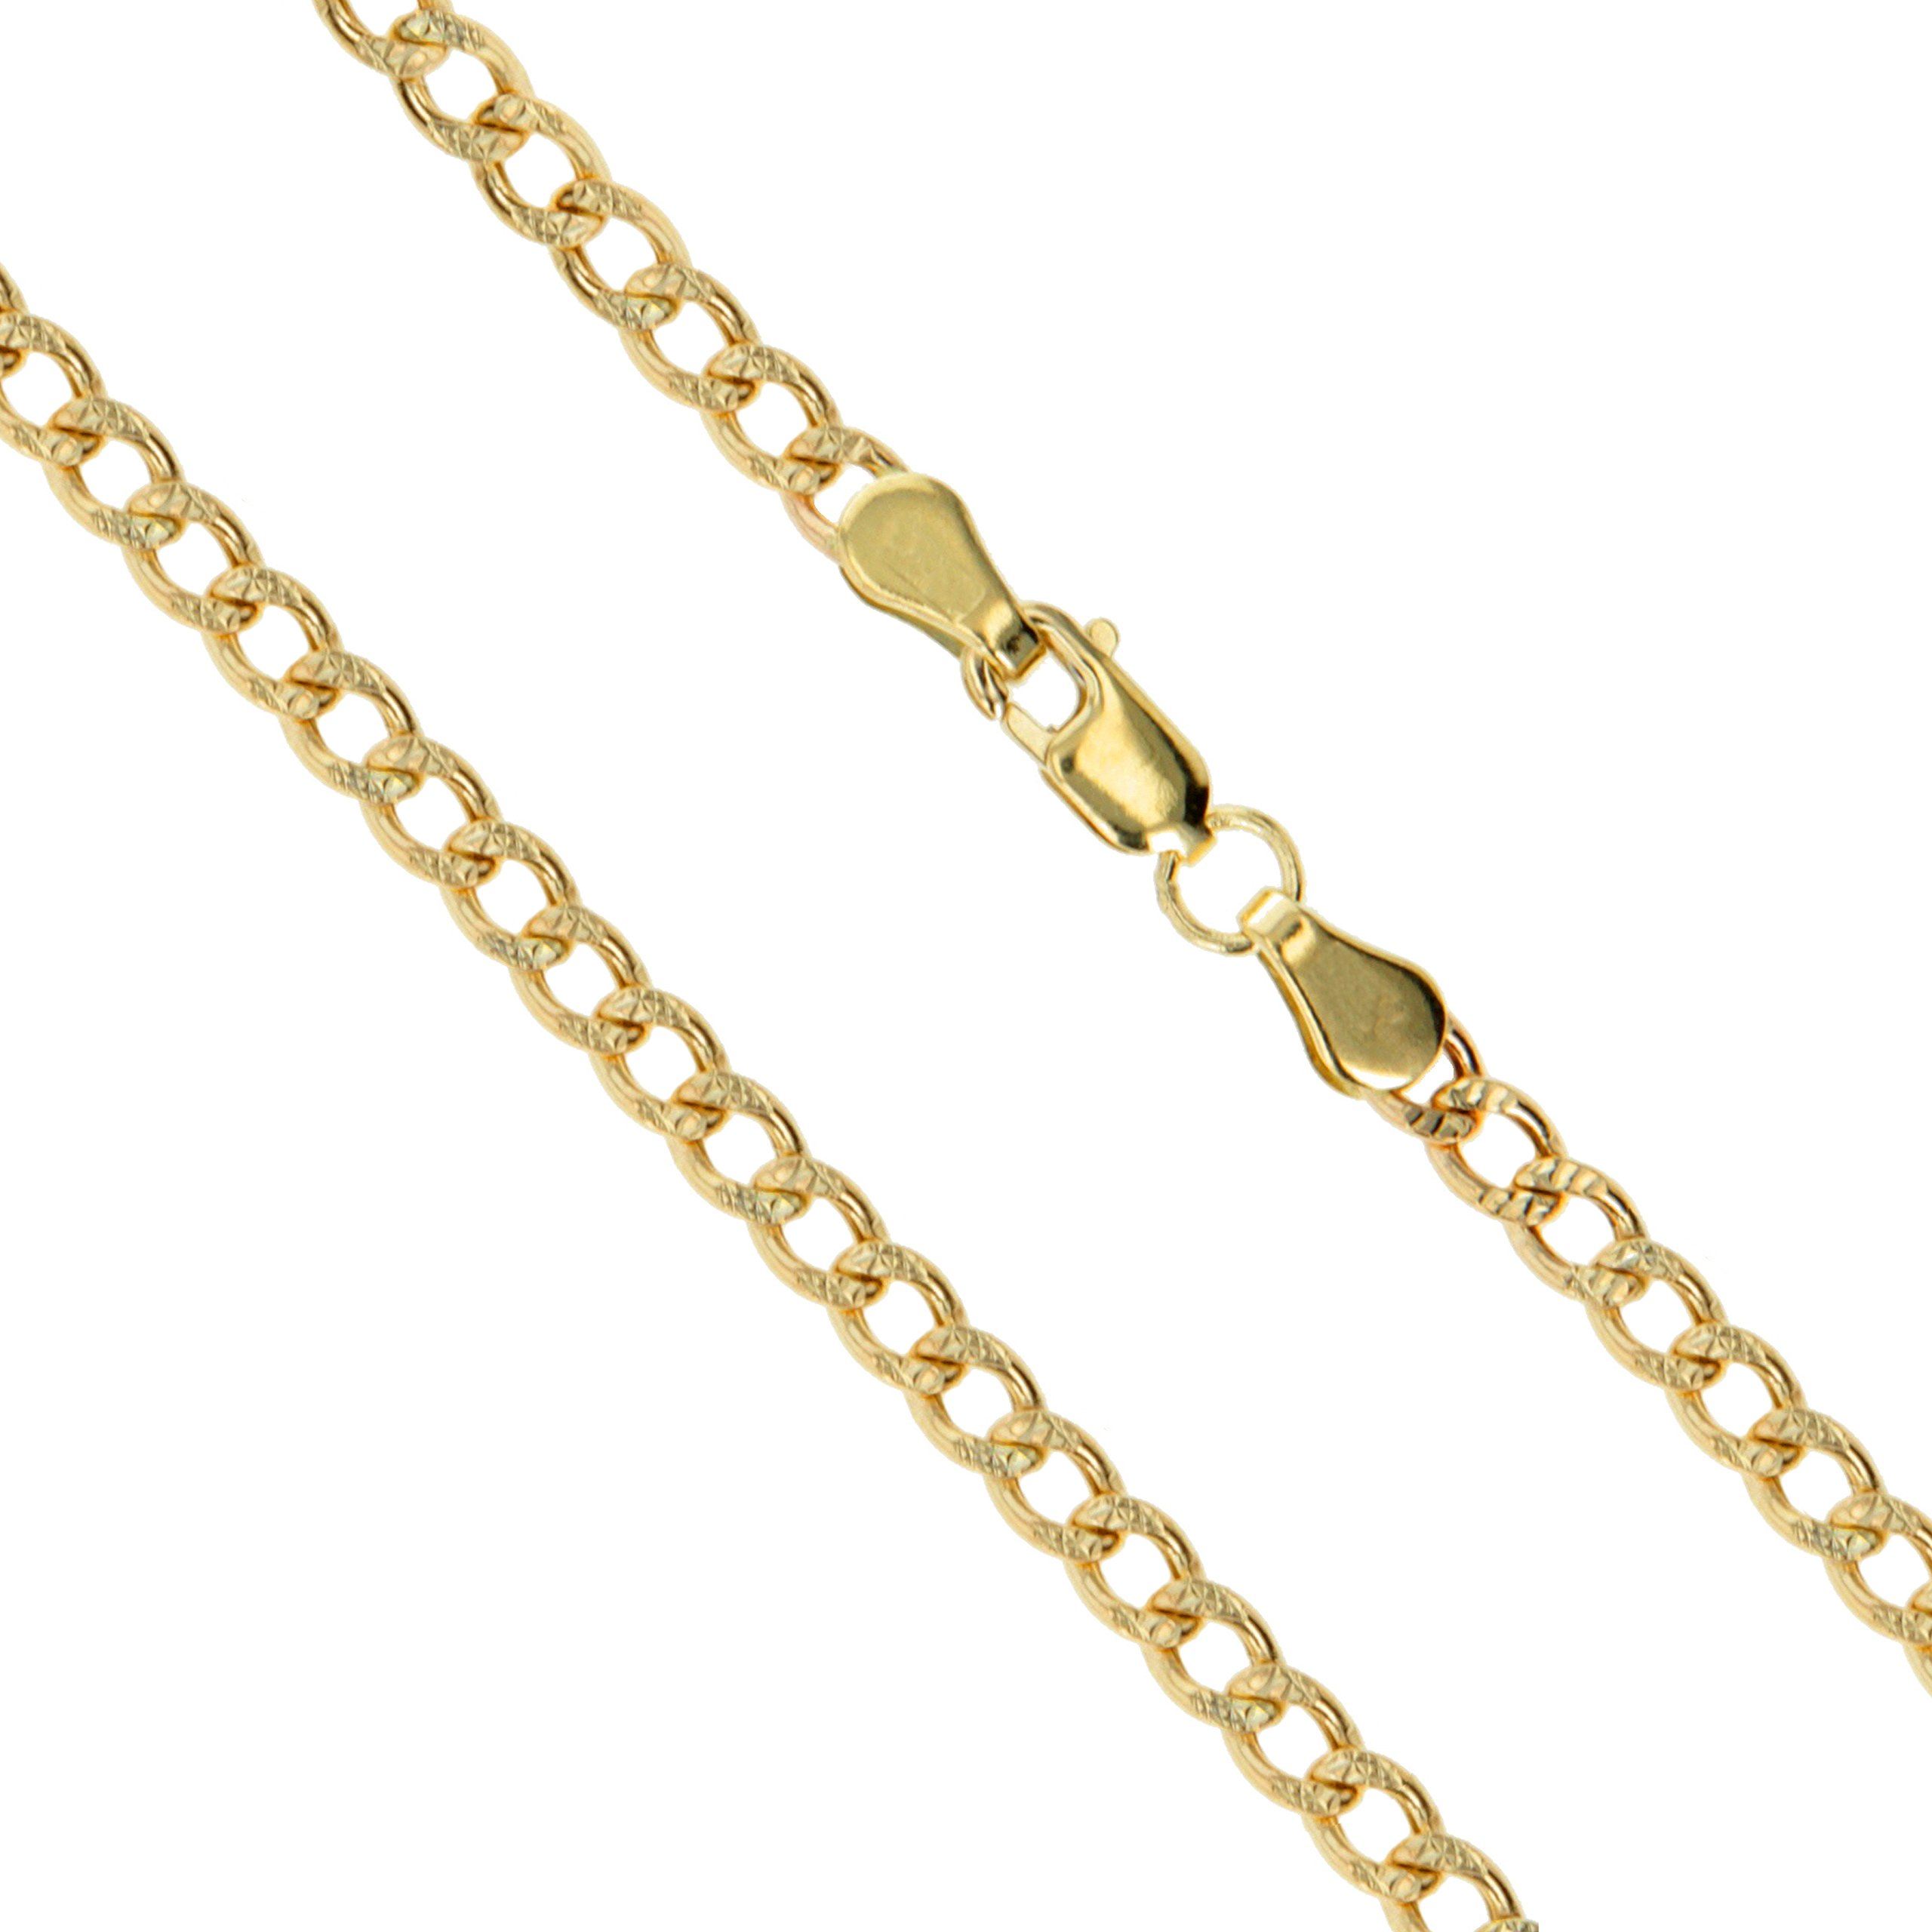 14k Yellow Gold Solid Pave Curb Link Chain 2.5mm Necklace 24''